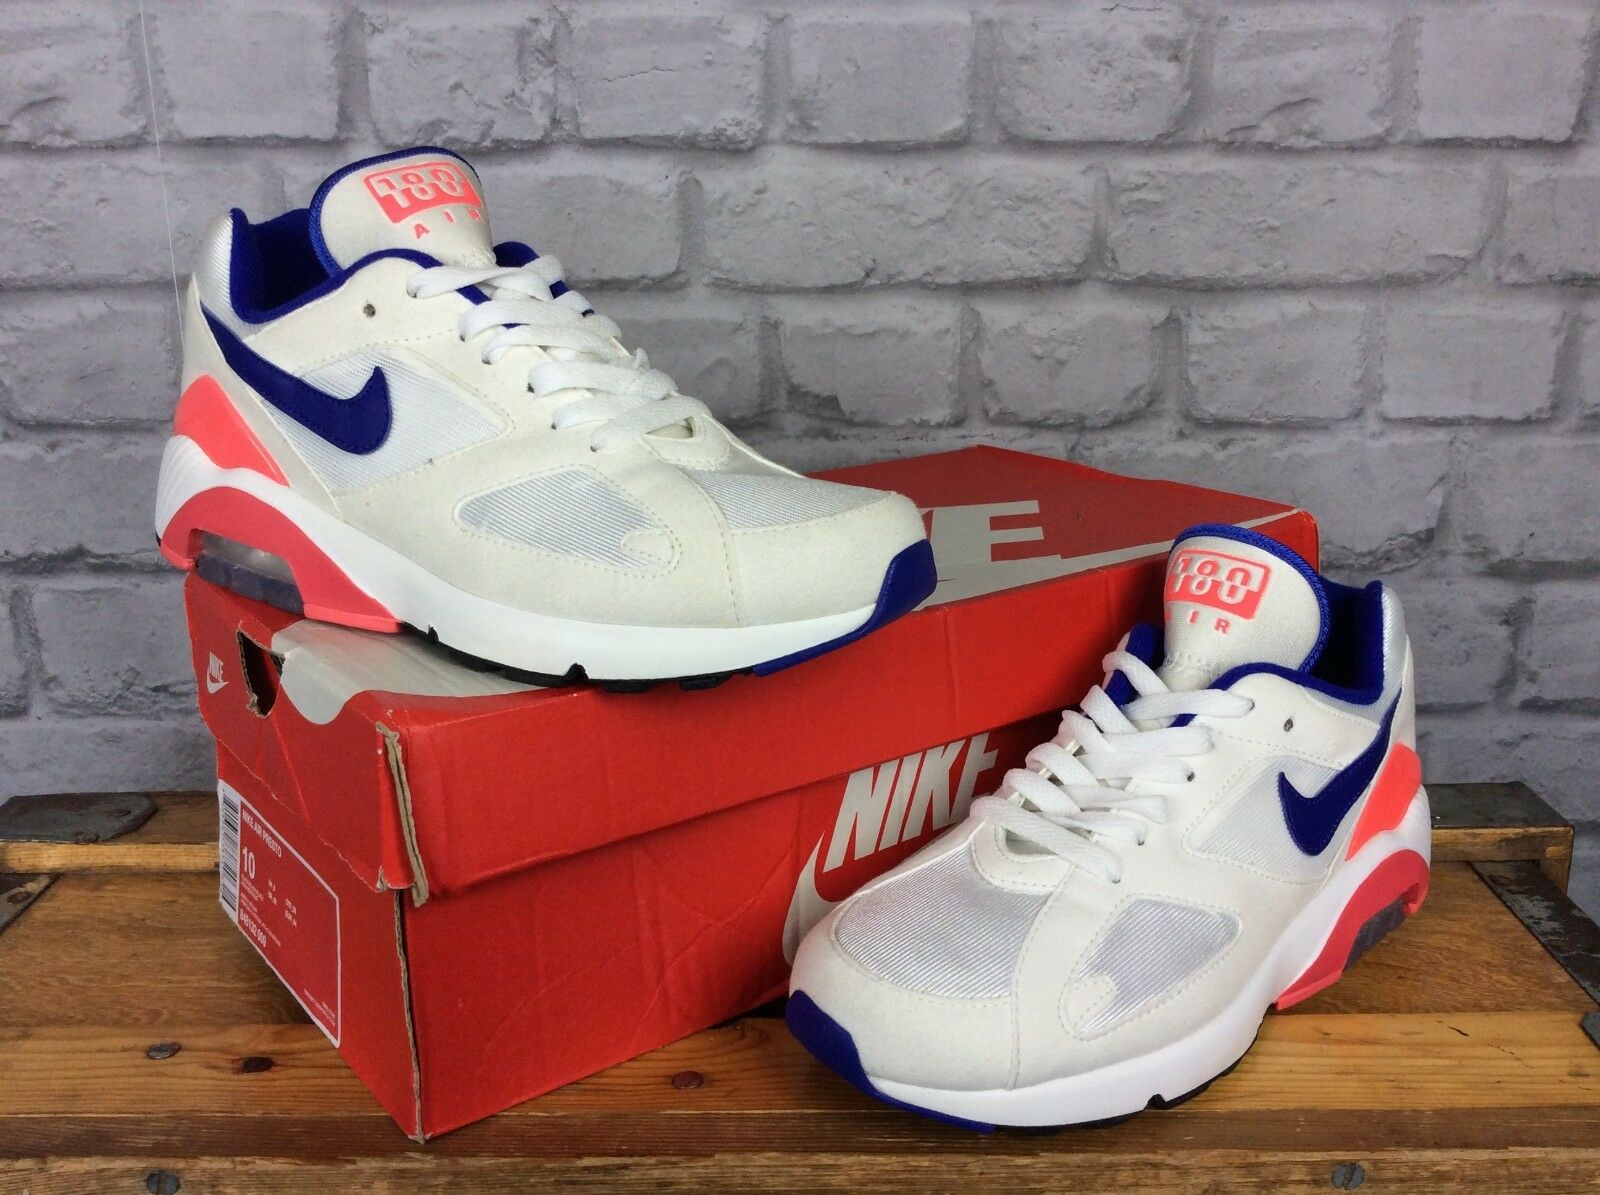 NIKE AIR MAX 180 LADIES5 EU 38.5 rose blanc ULTRAMARINE ouge TRAINERS rose 38.5 Bleu 4b34ea